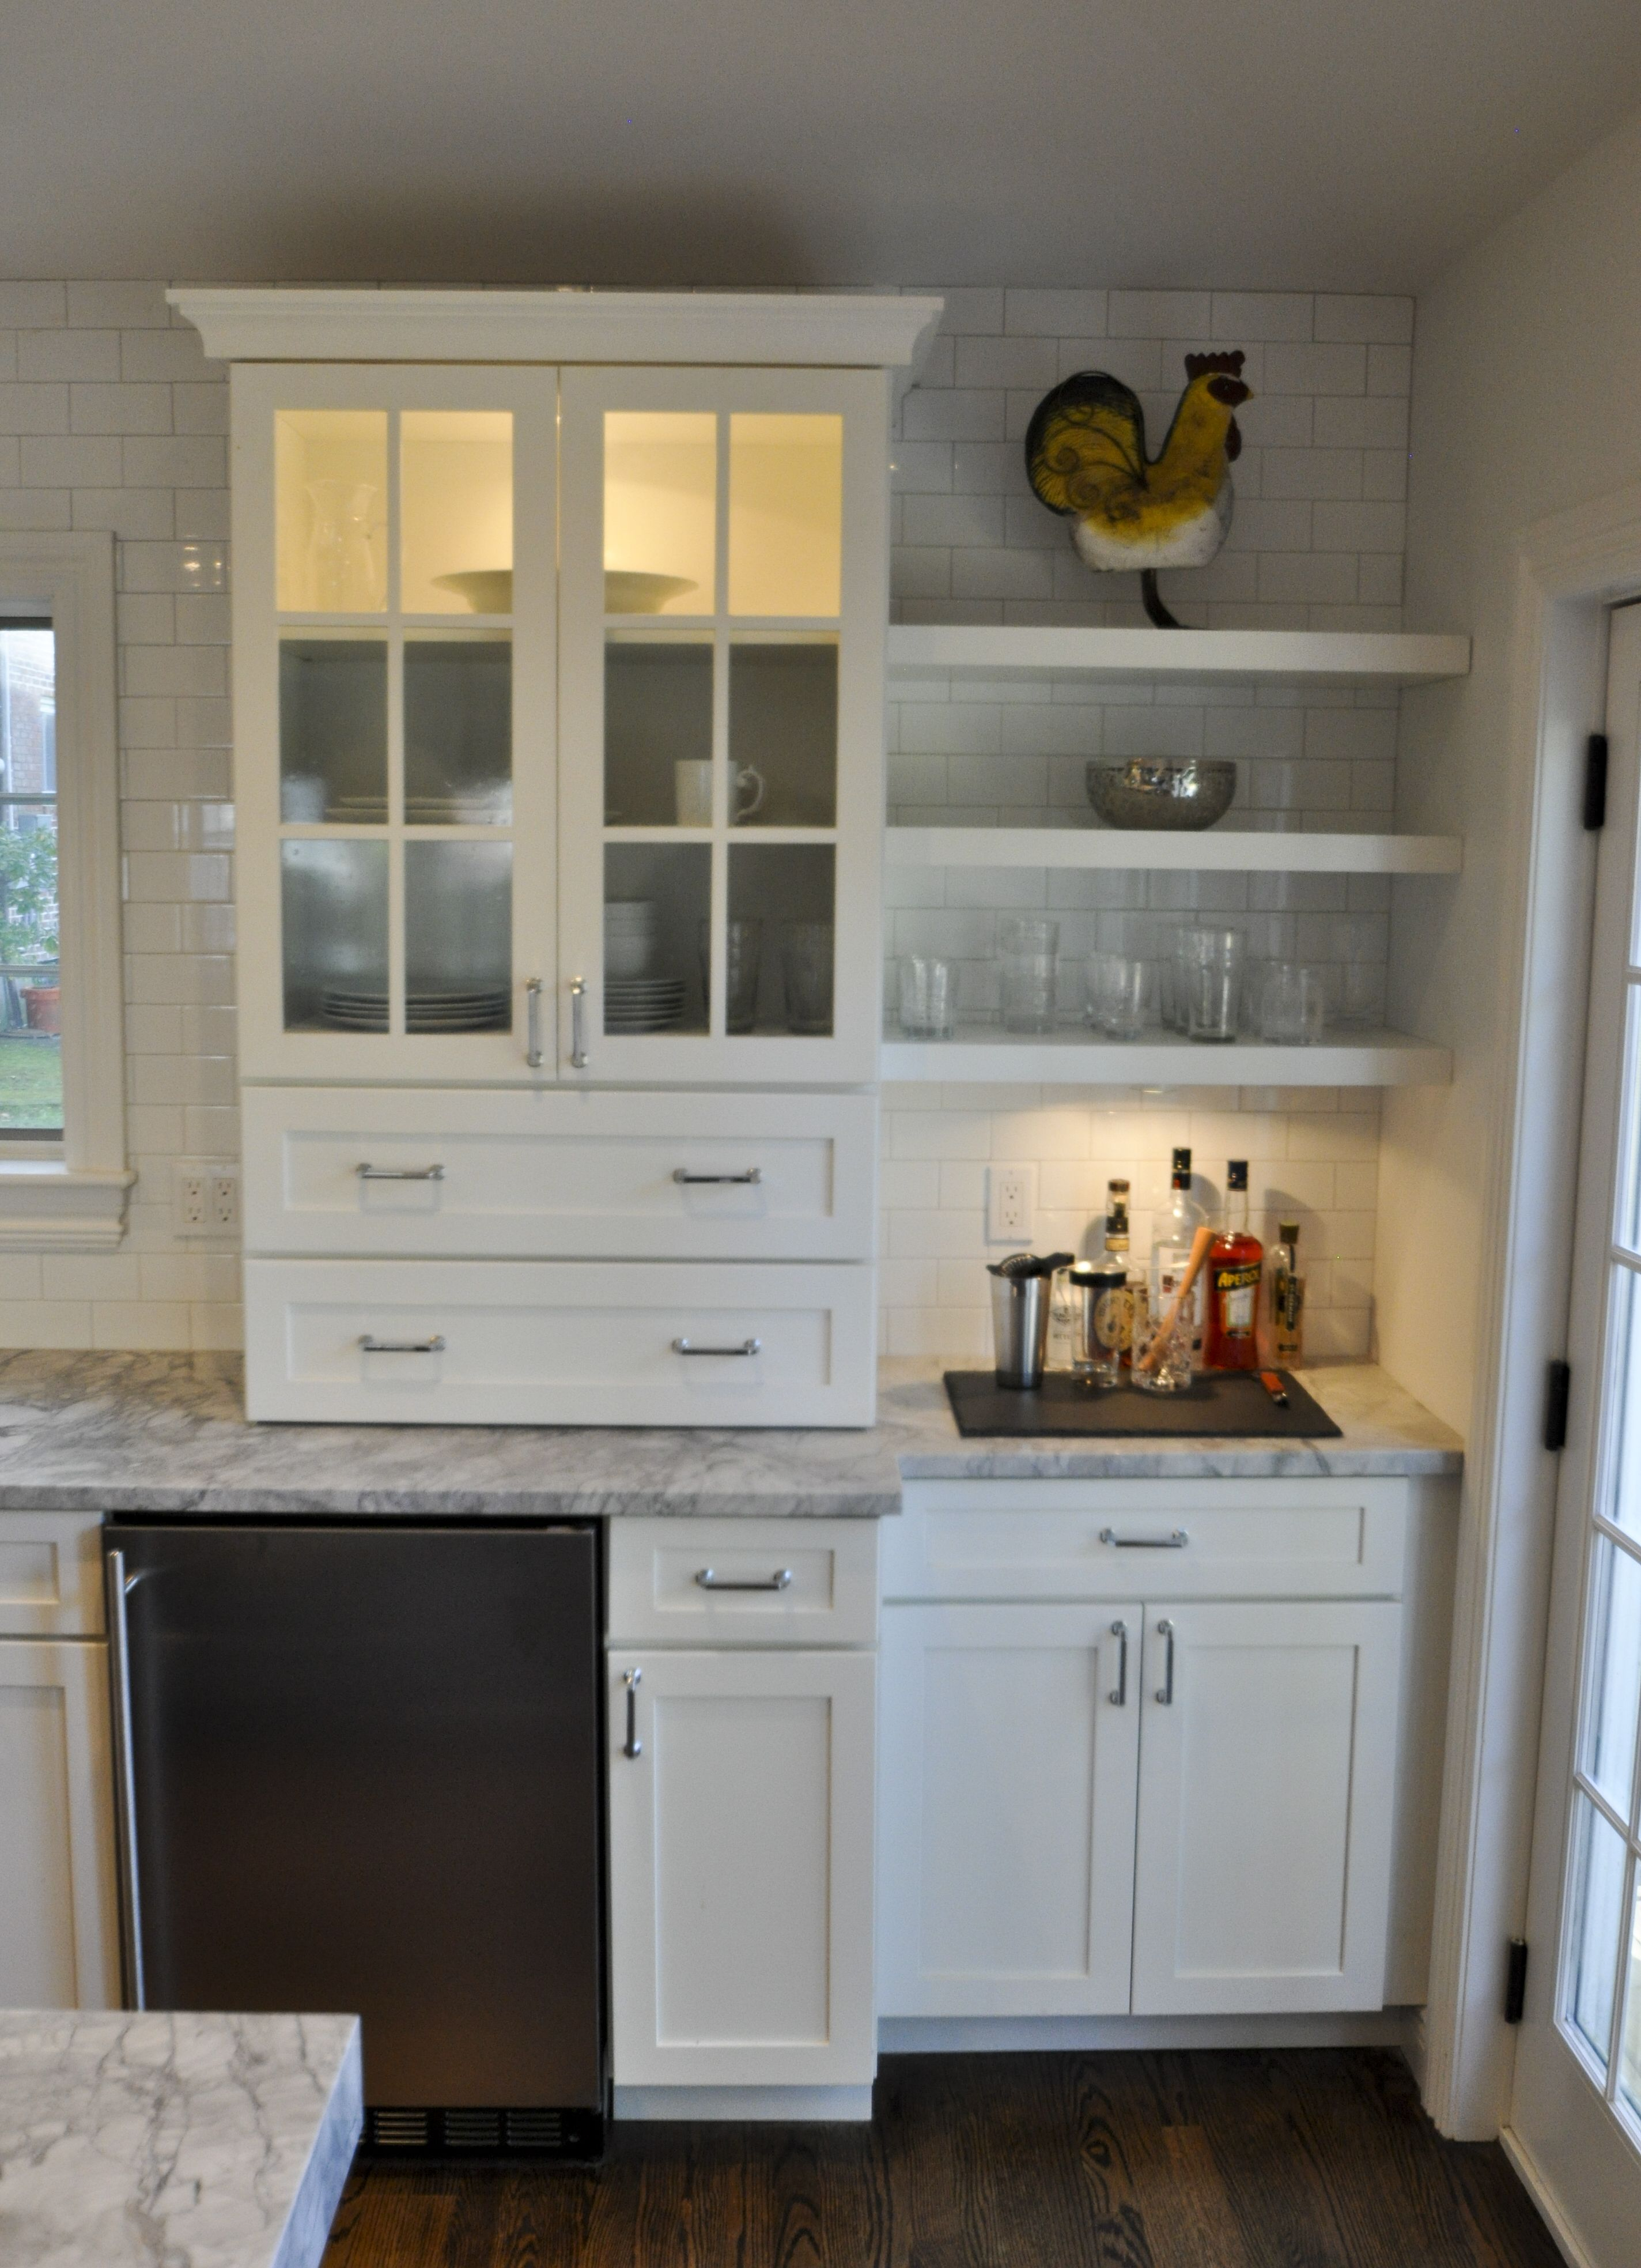 Cabinet Tower With In Cabinet Lighting And Flanking Floating Shelves Kitchen Remodel Kitchen Construction Luxury Kitchen Design